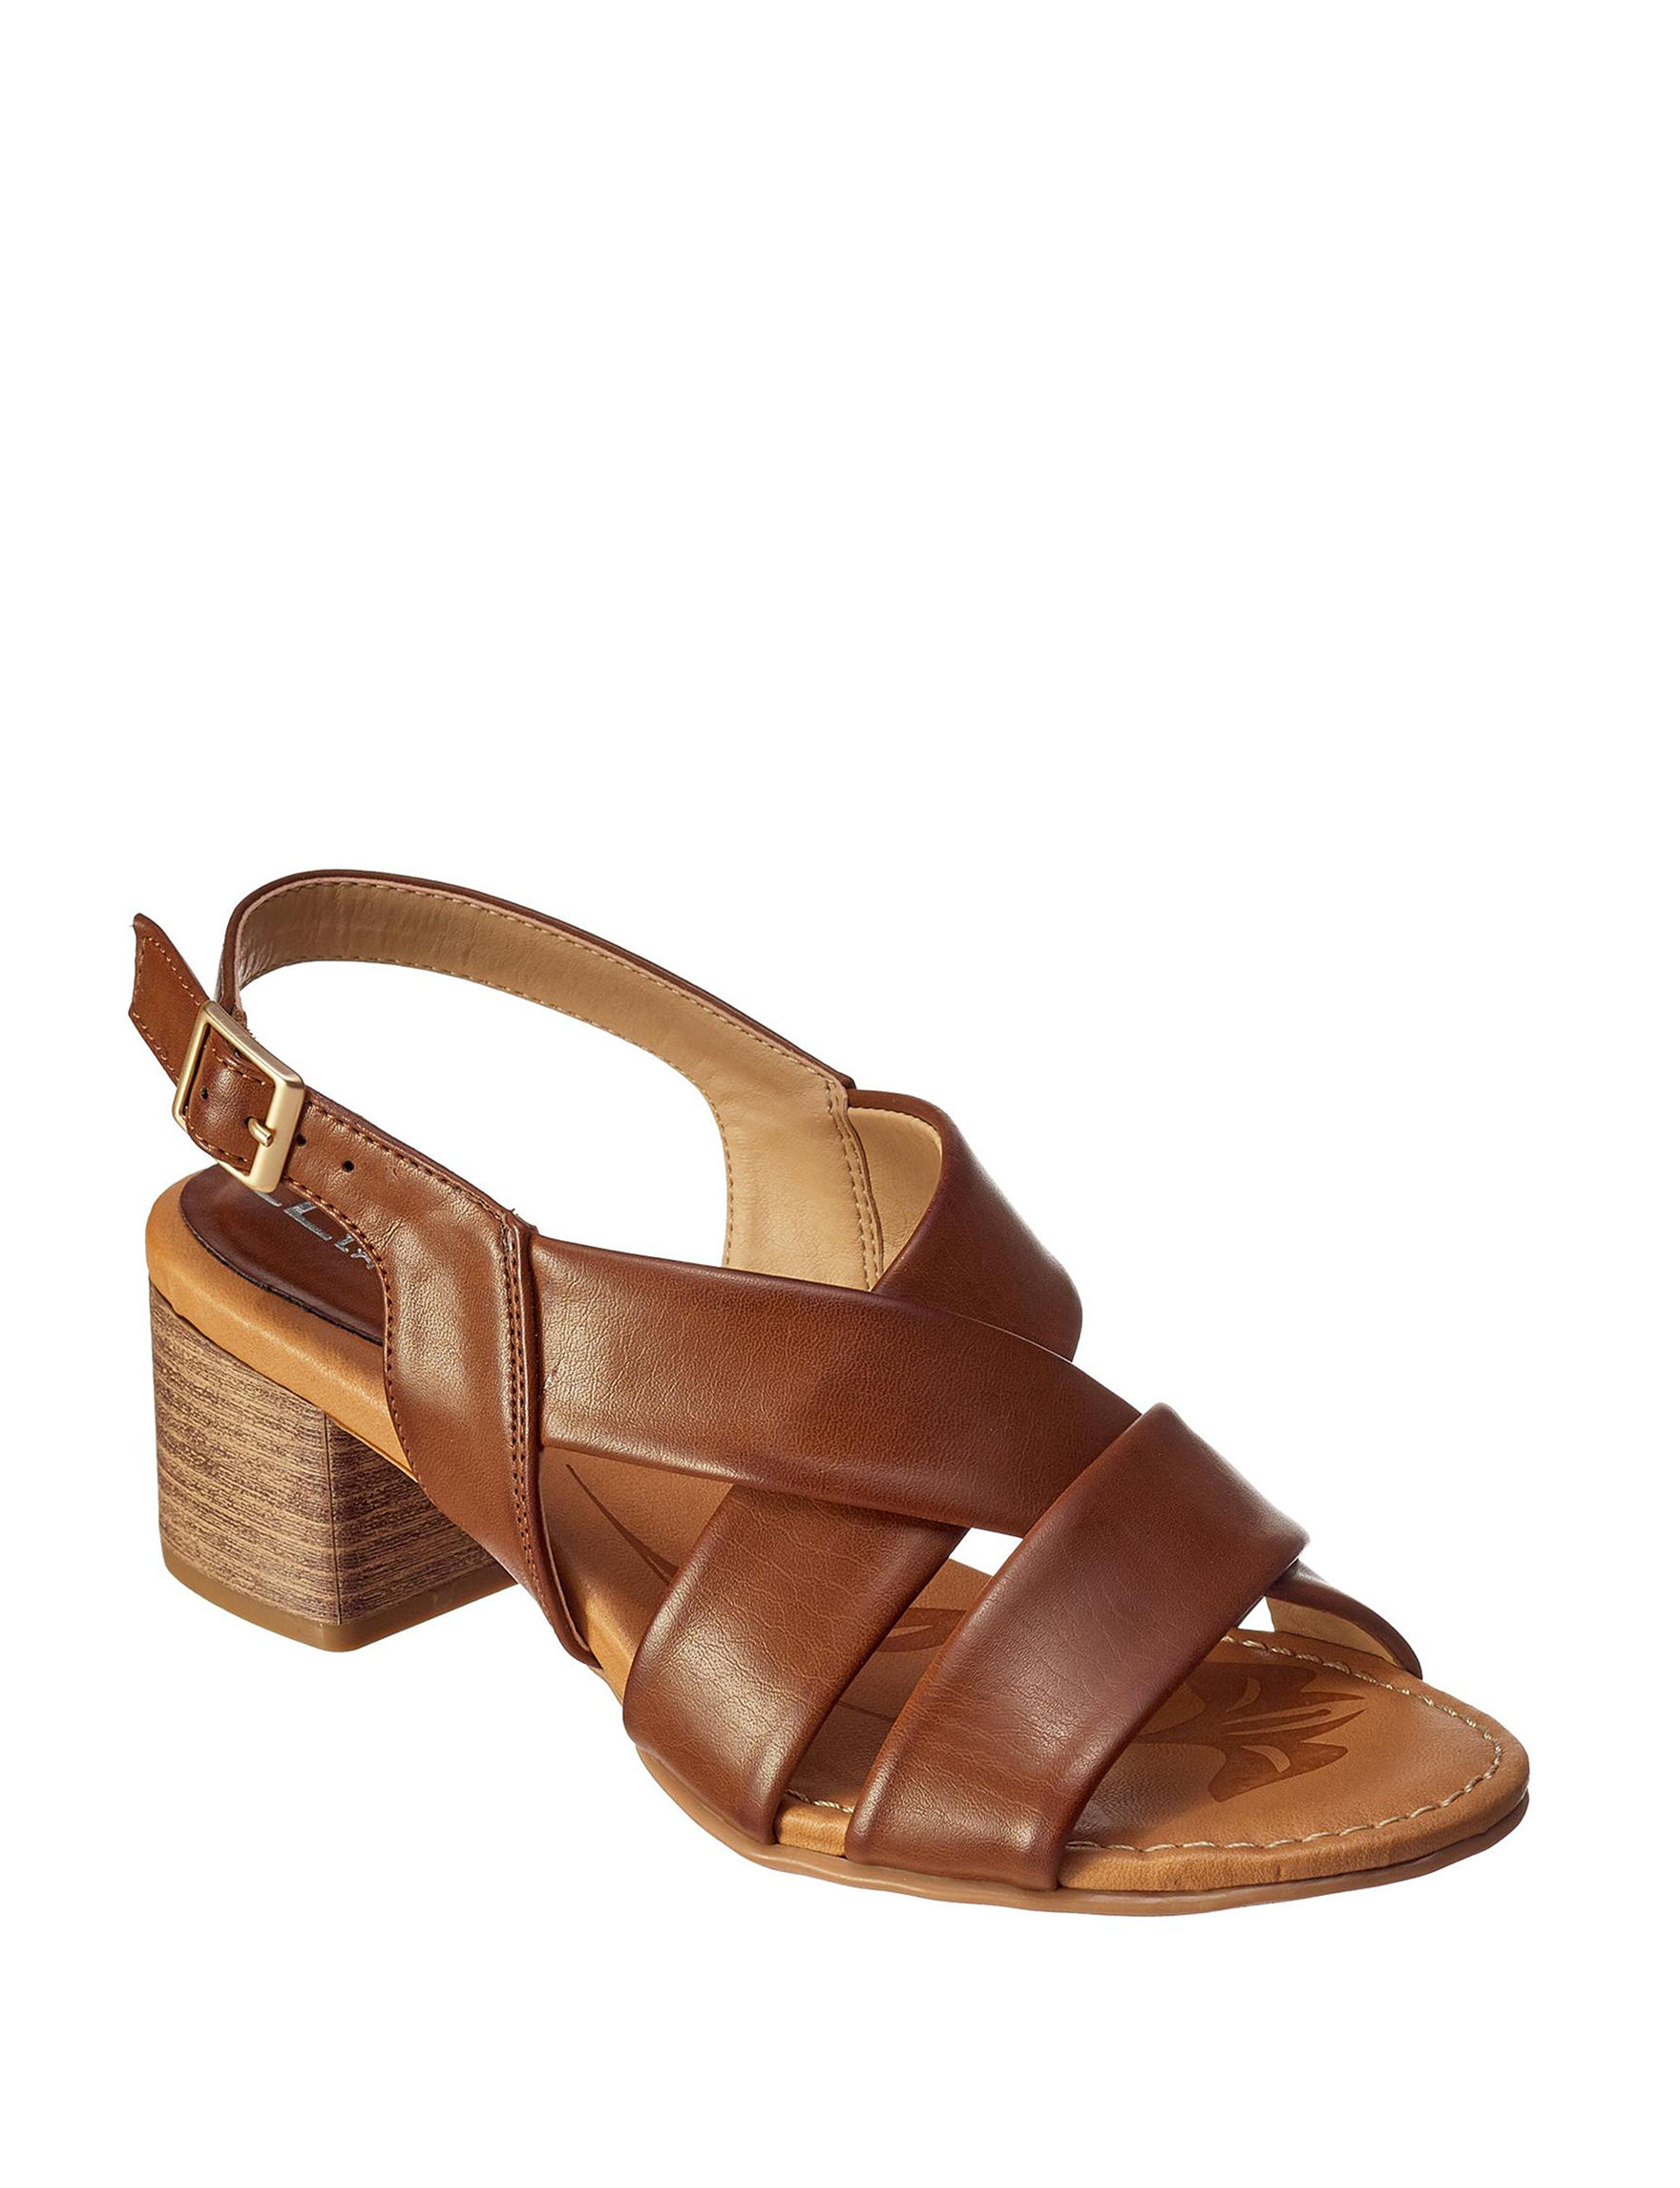 CL by Laundry Brown Heeled Sandals